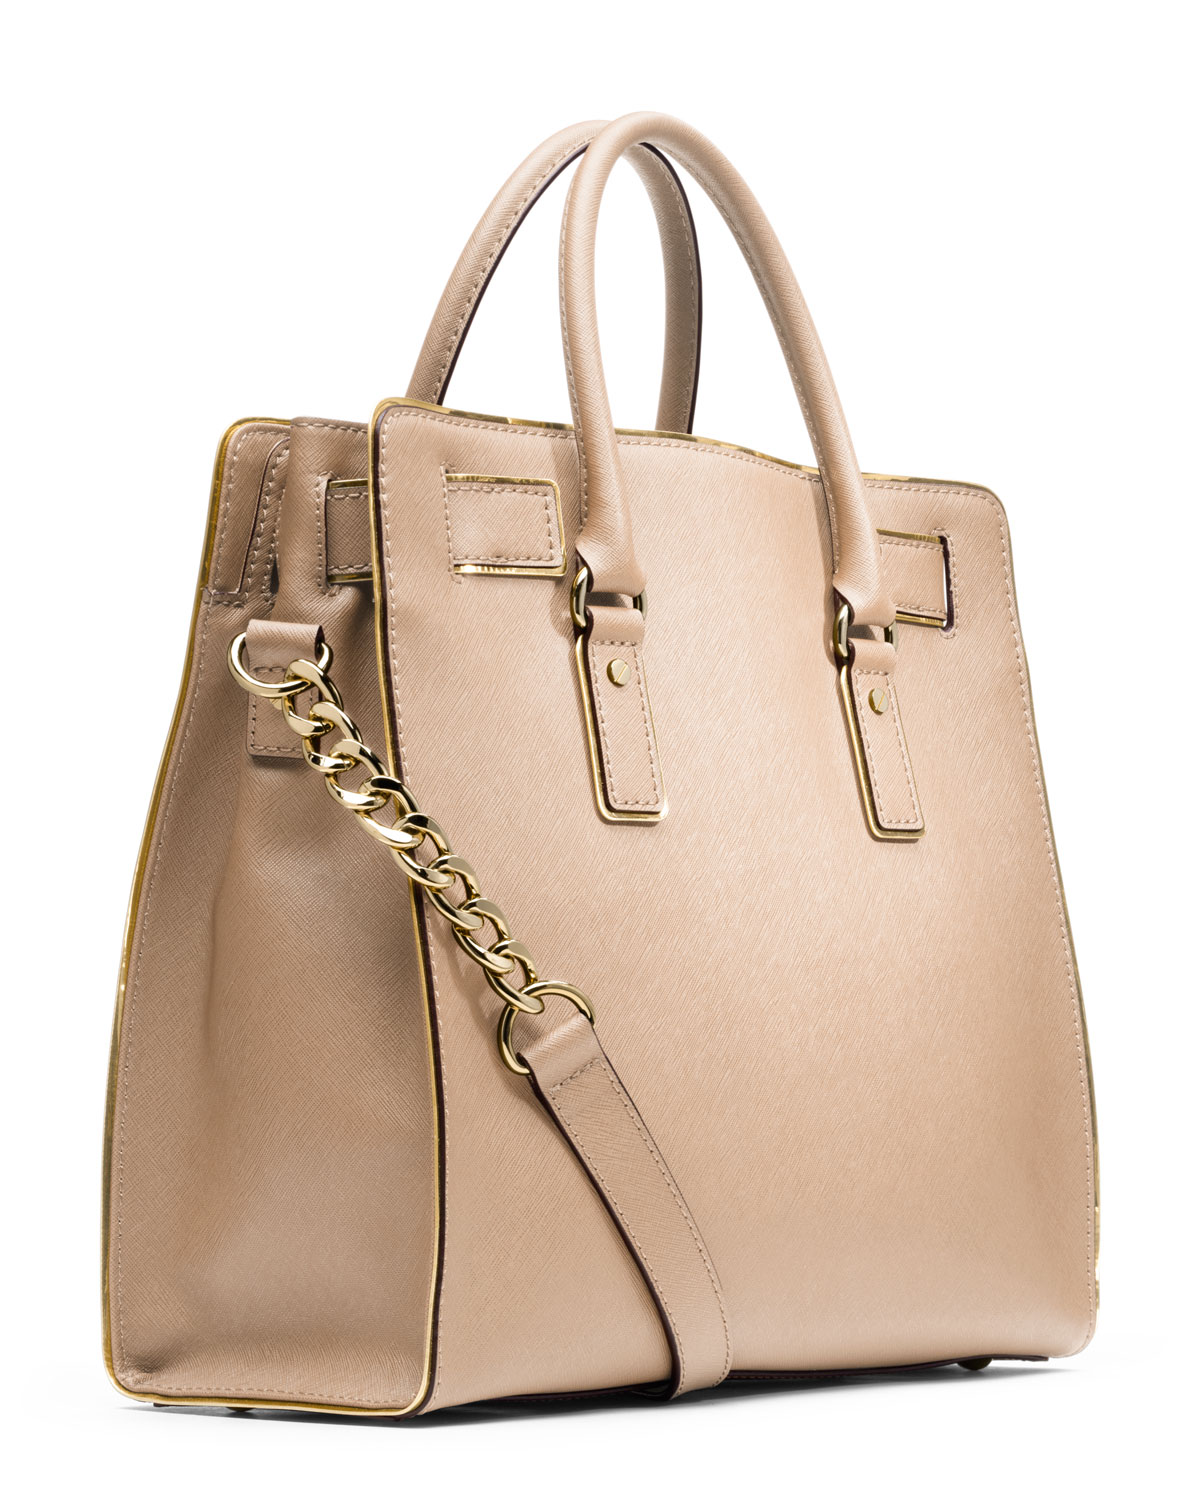 4061f1fefb4659 ... usa lyst michael kors michael large hamilton trimmed tote in natural  7566d b56b8